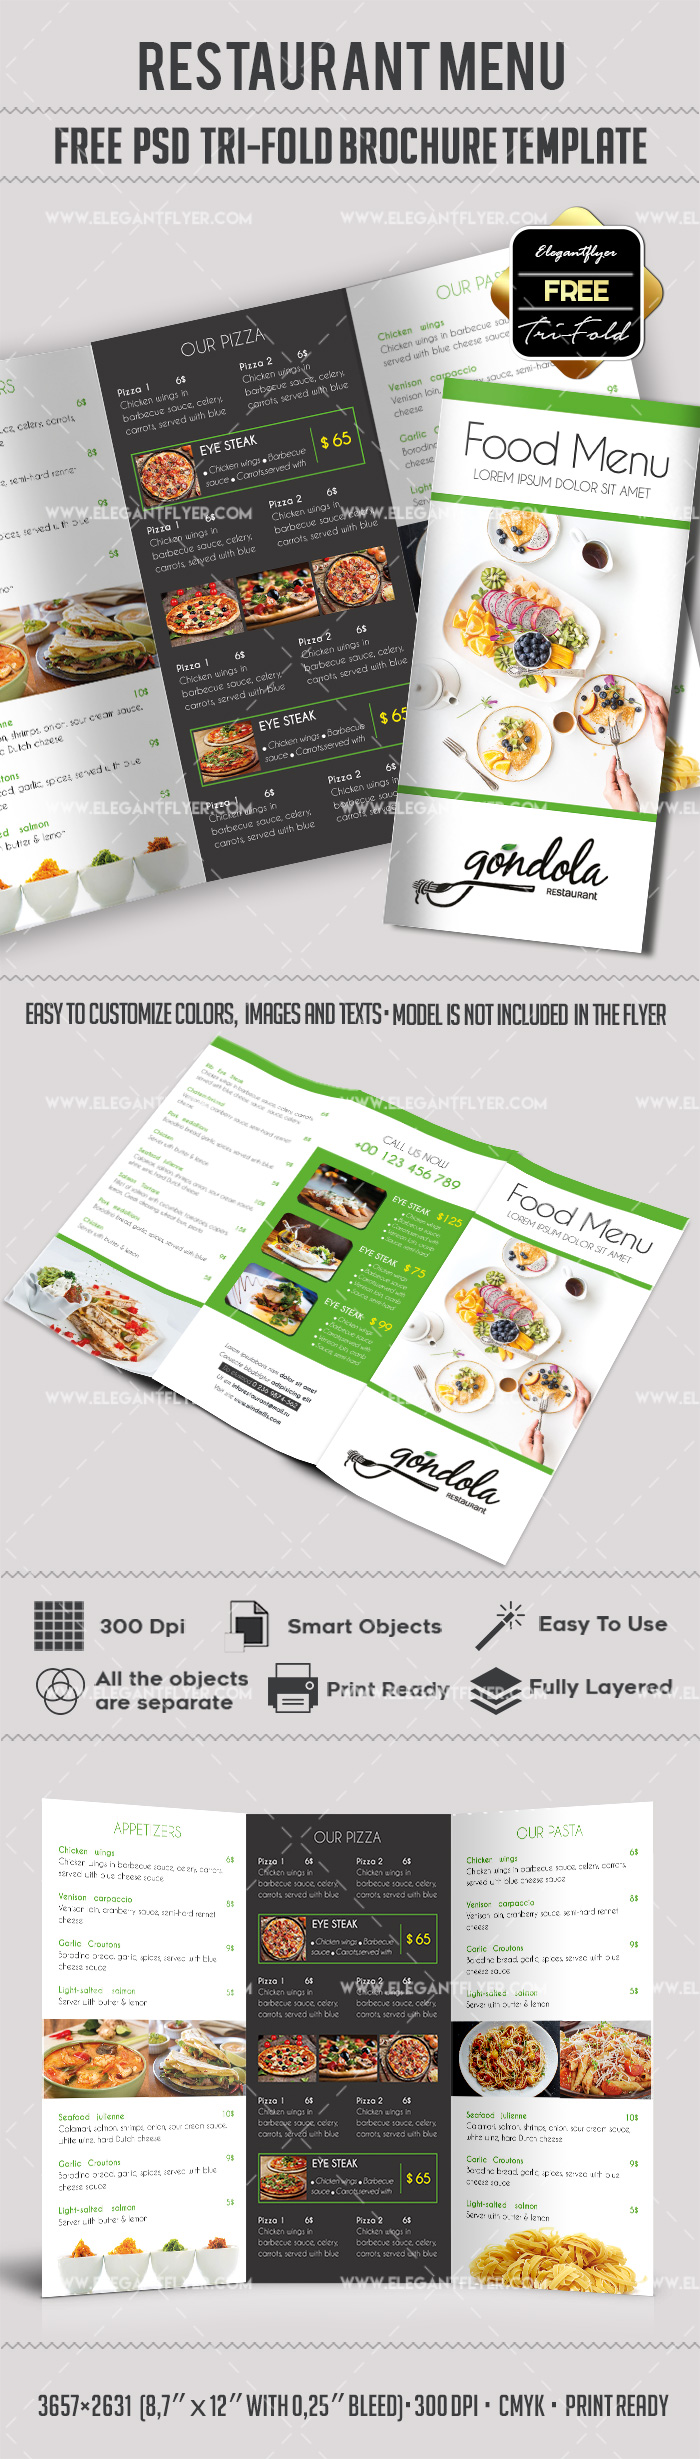 Free Food Menu U2013 Restaurant Brochure Template In PSD